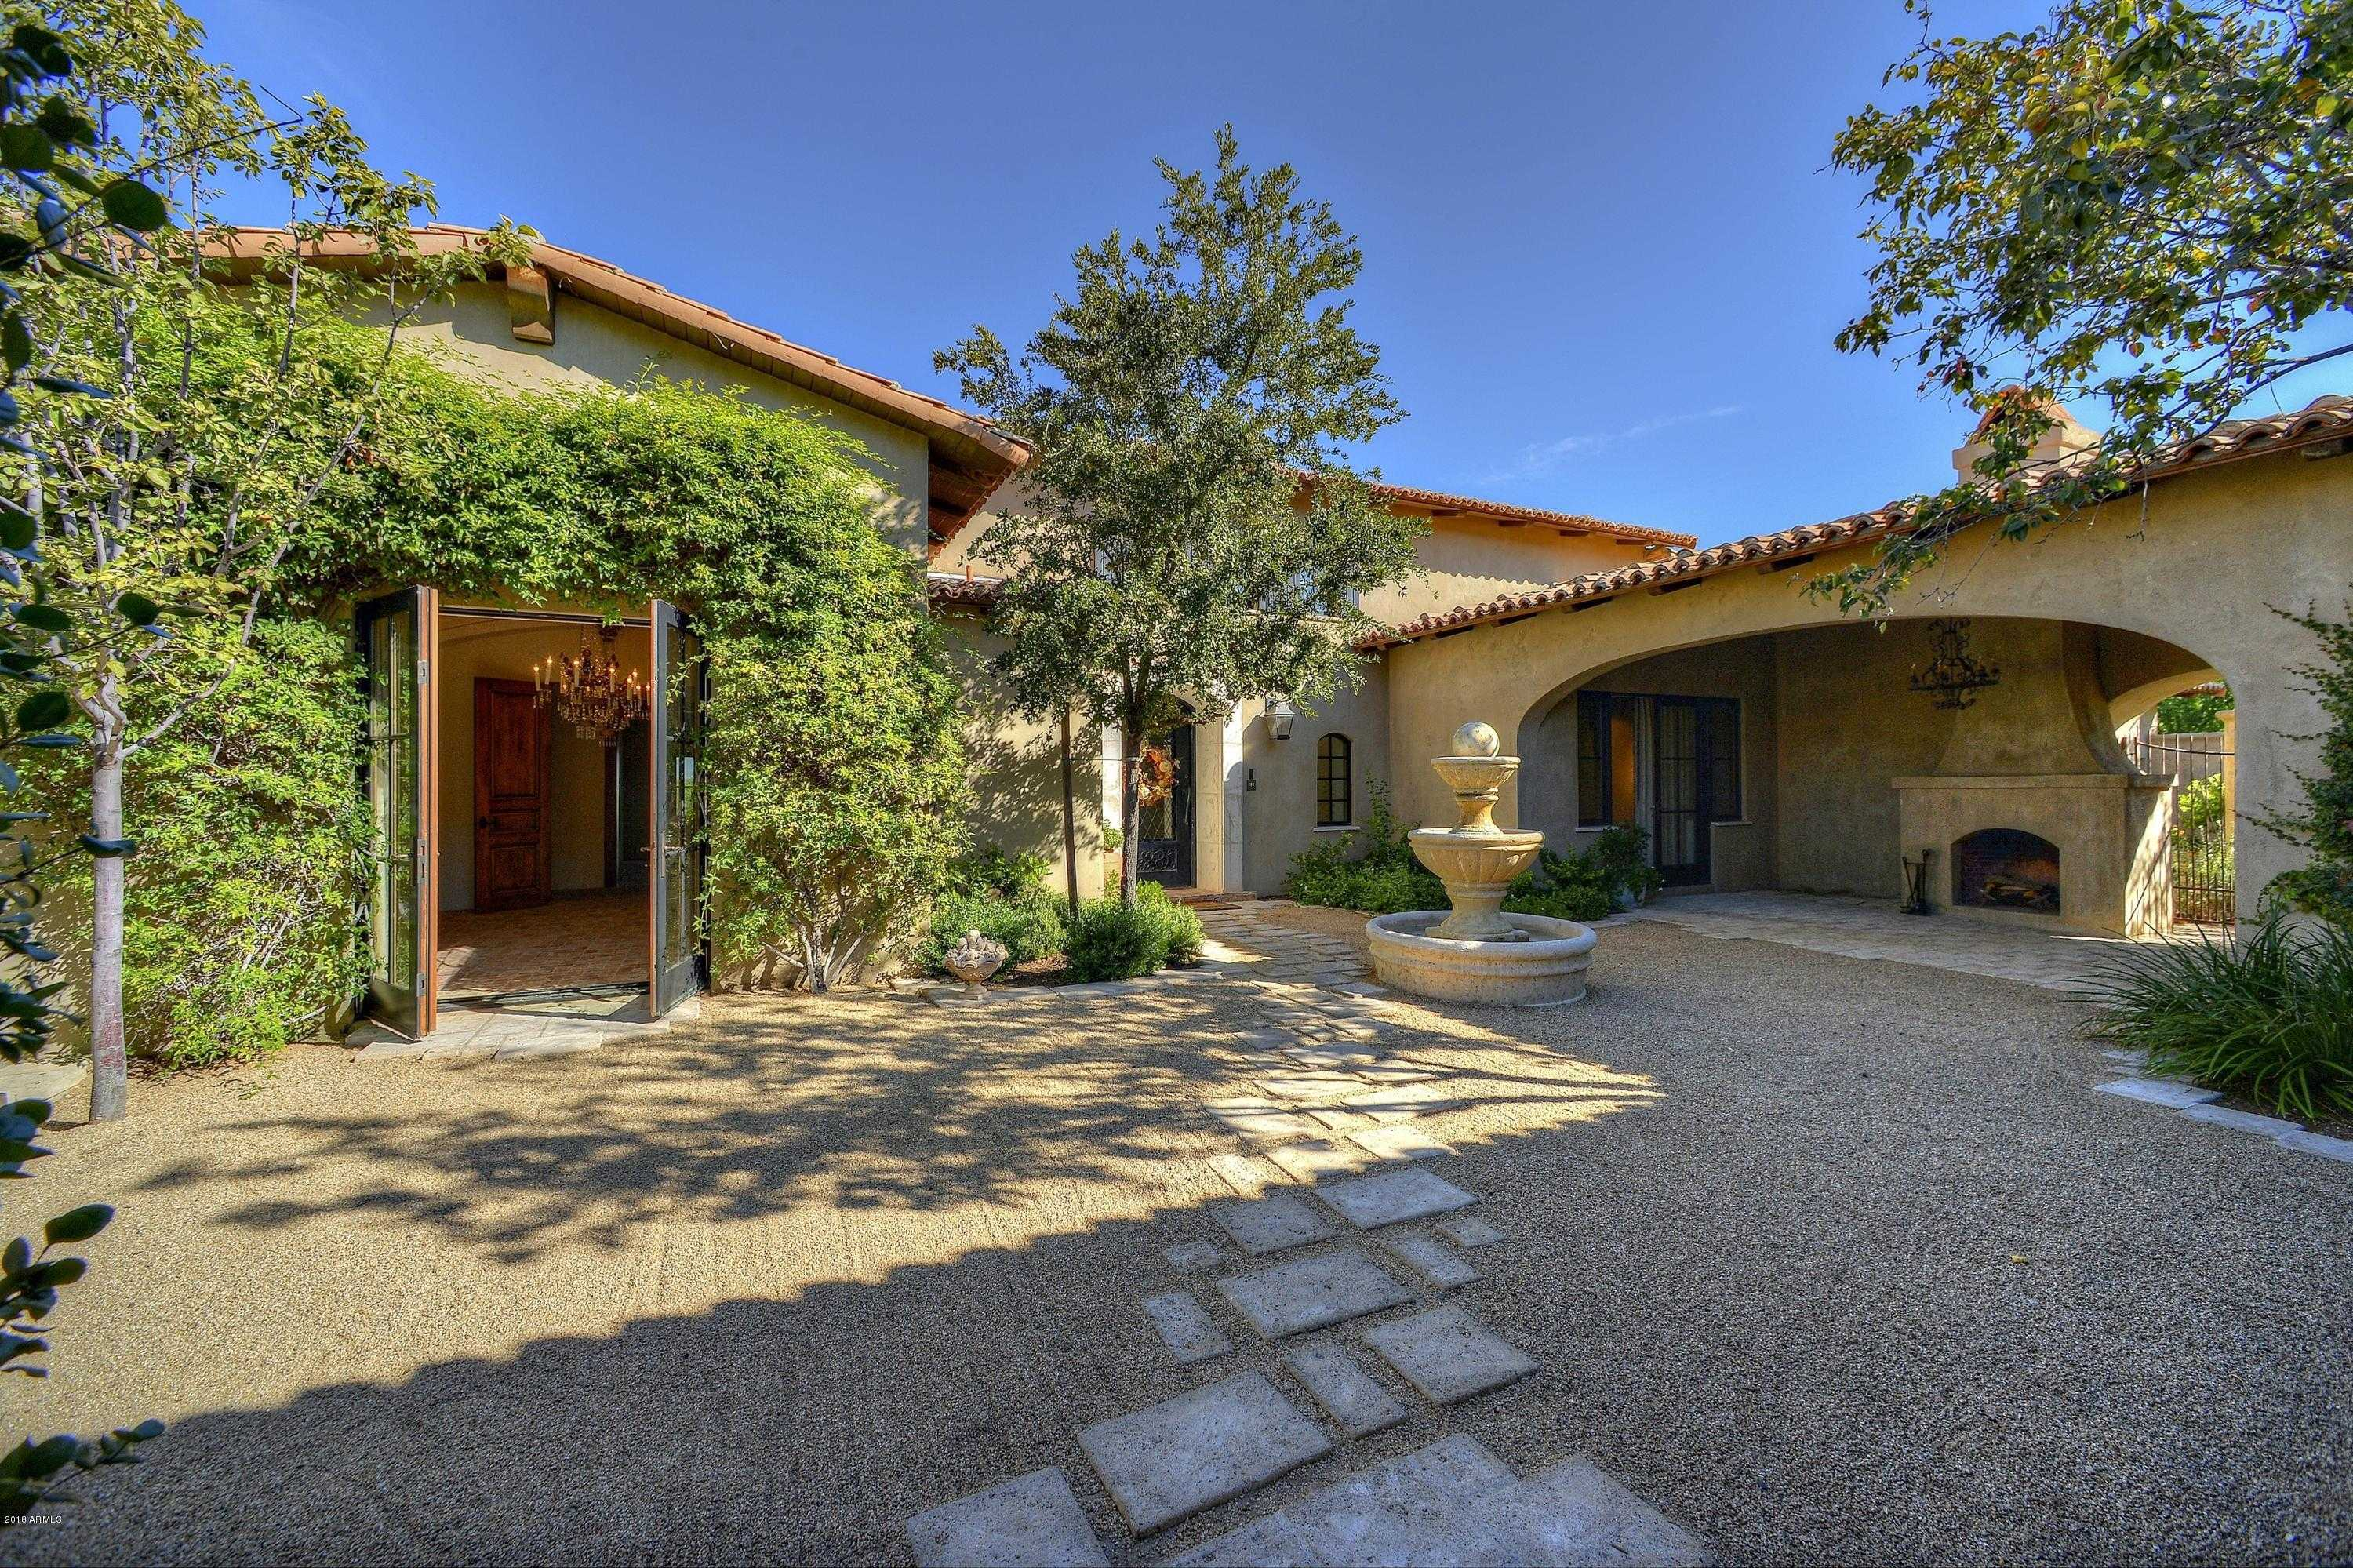 $4,150,000 - 5Br/7Ba - Home for Sale in Mummy Mt Park Lots 32-40, 74-91 & Tr A, Paradise Valley